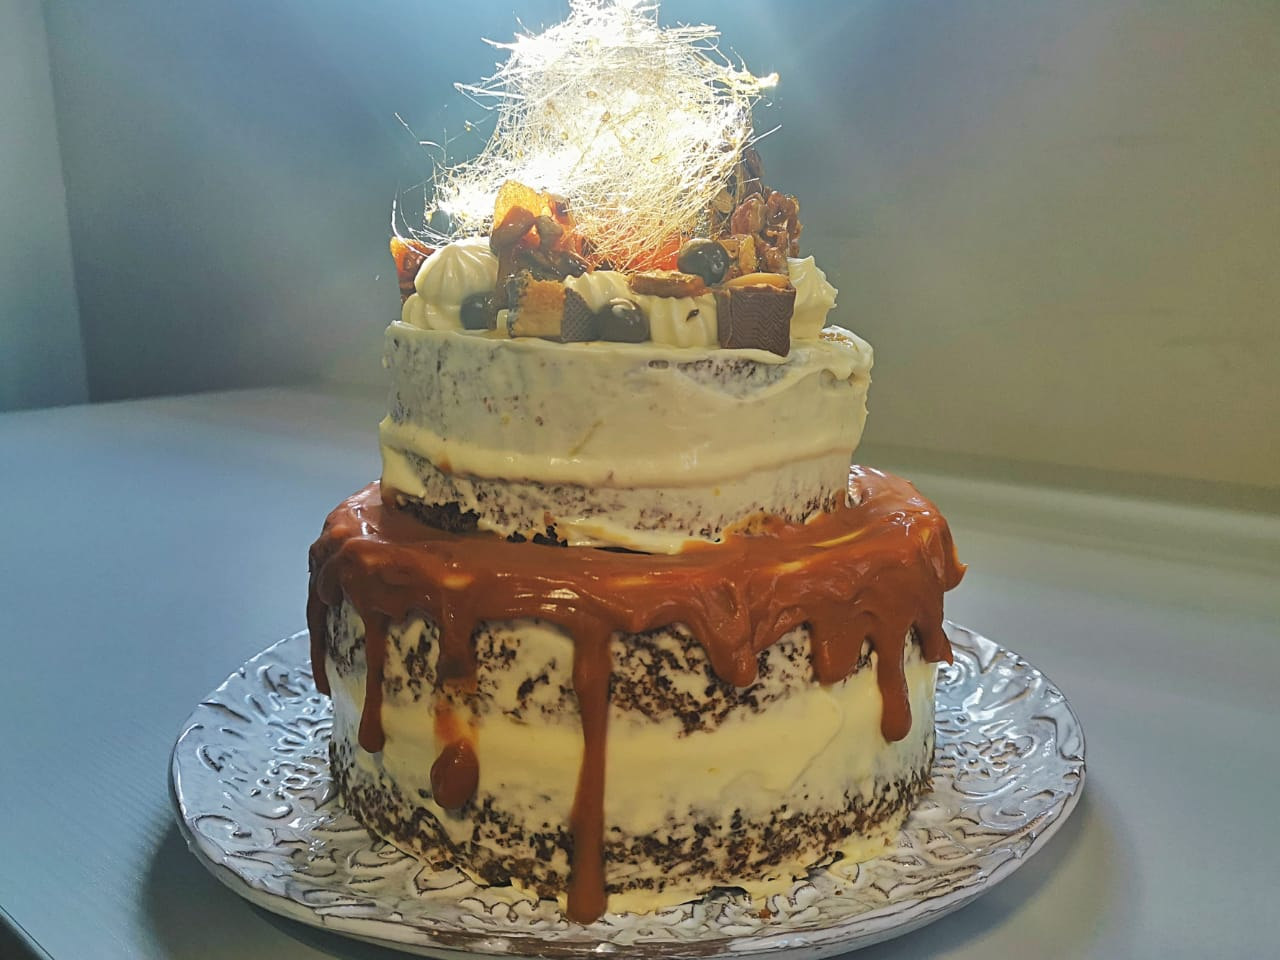 Suzanne Crozier – Carrot cake with cream cheese icing